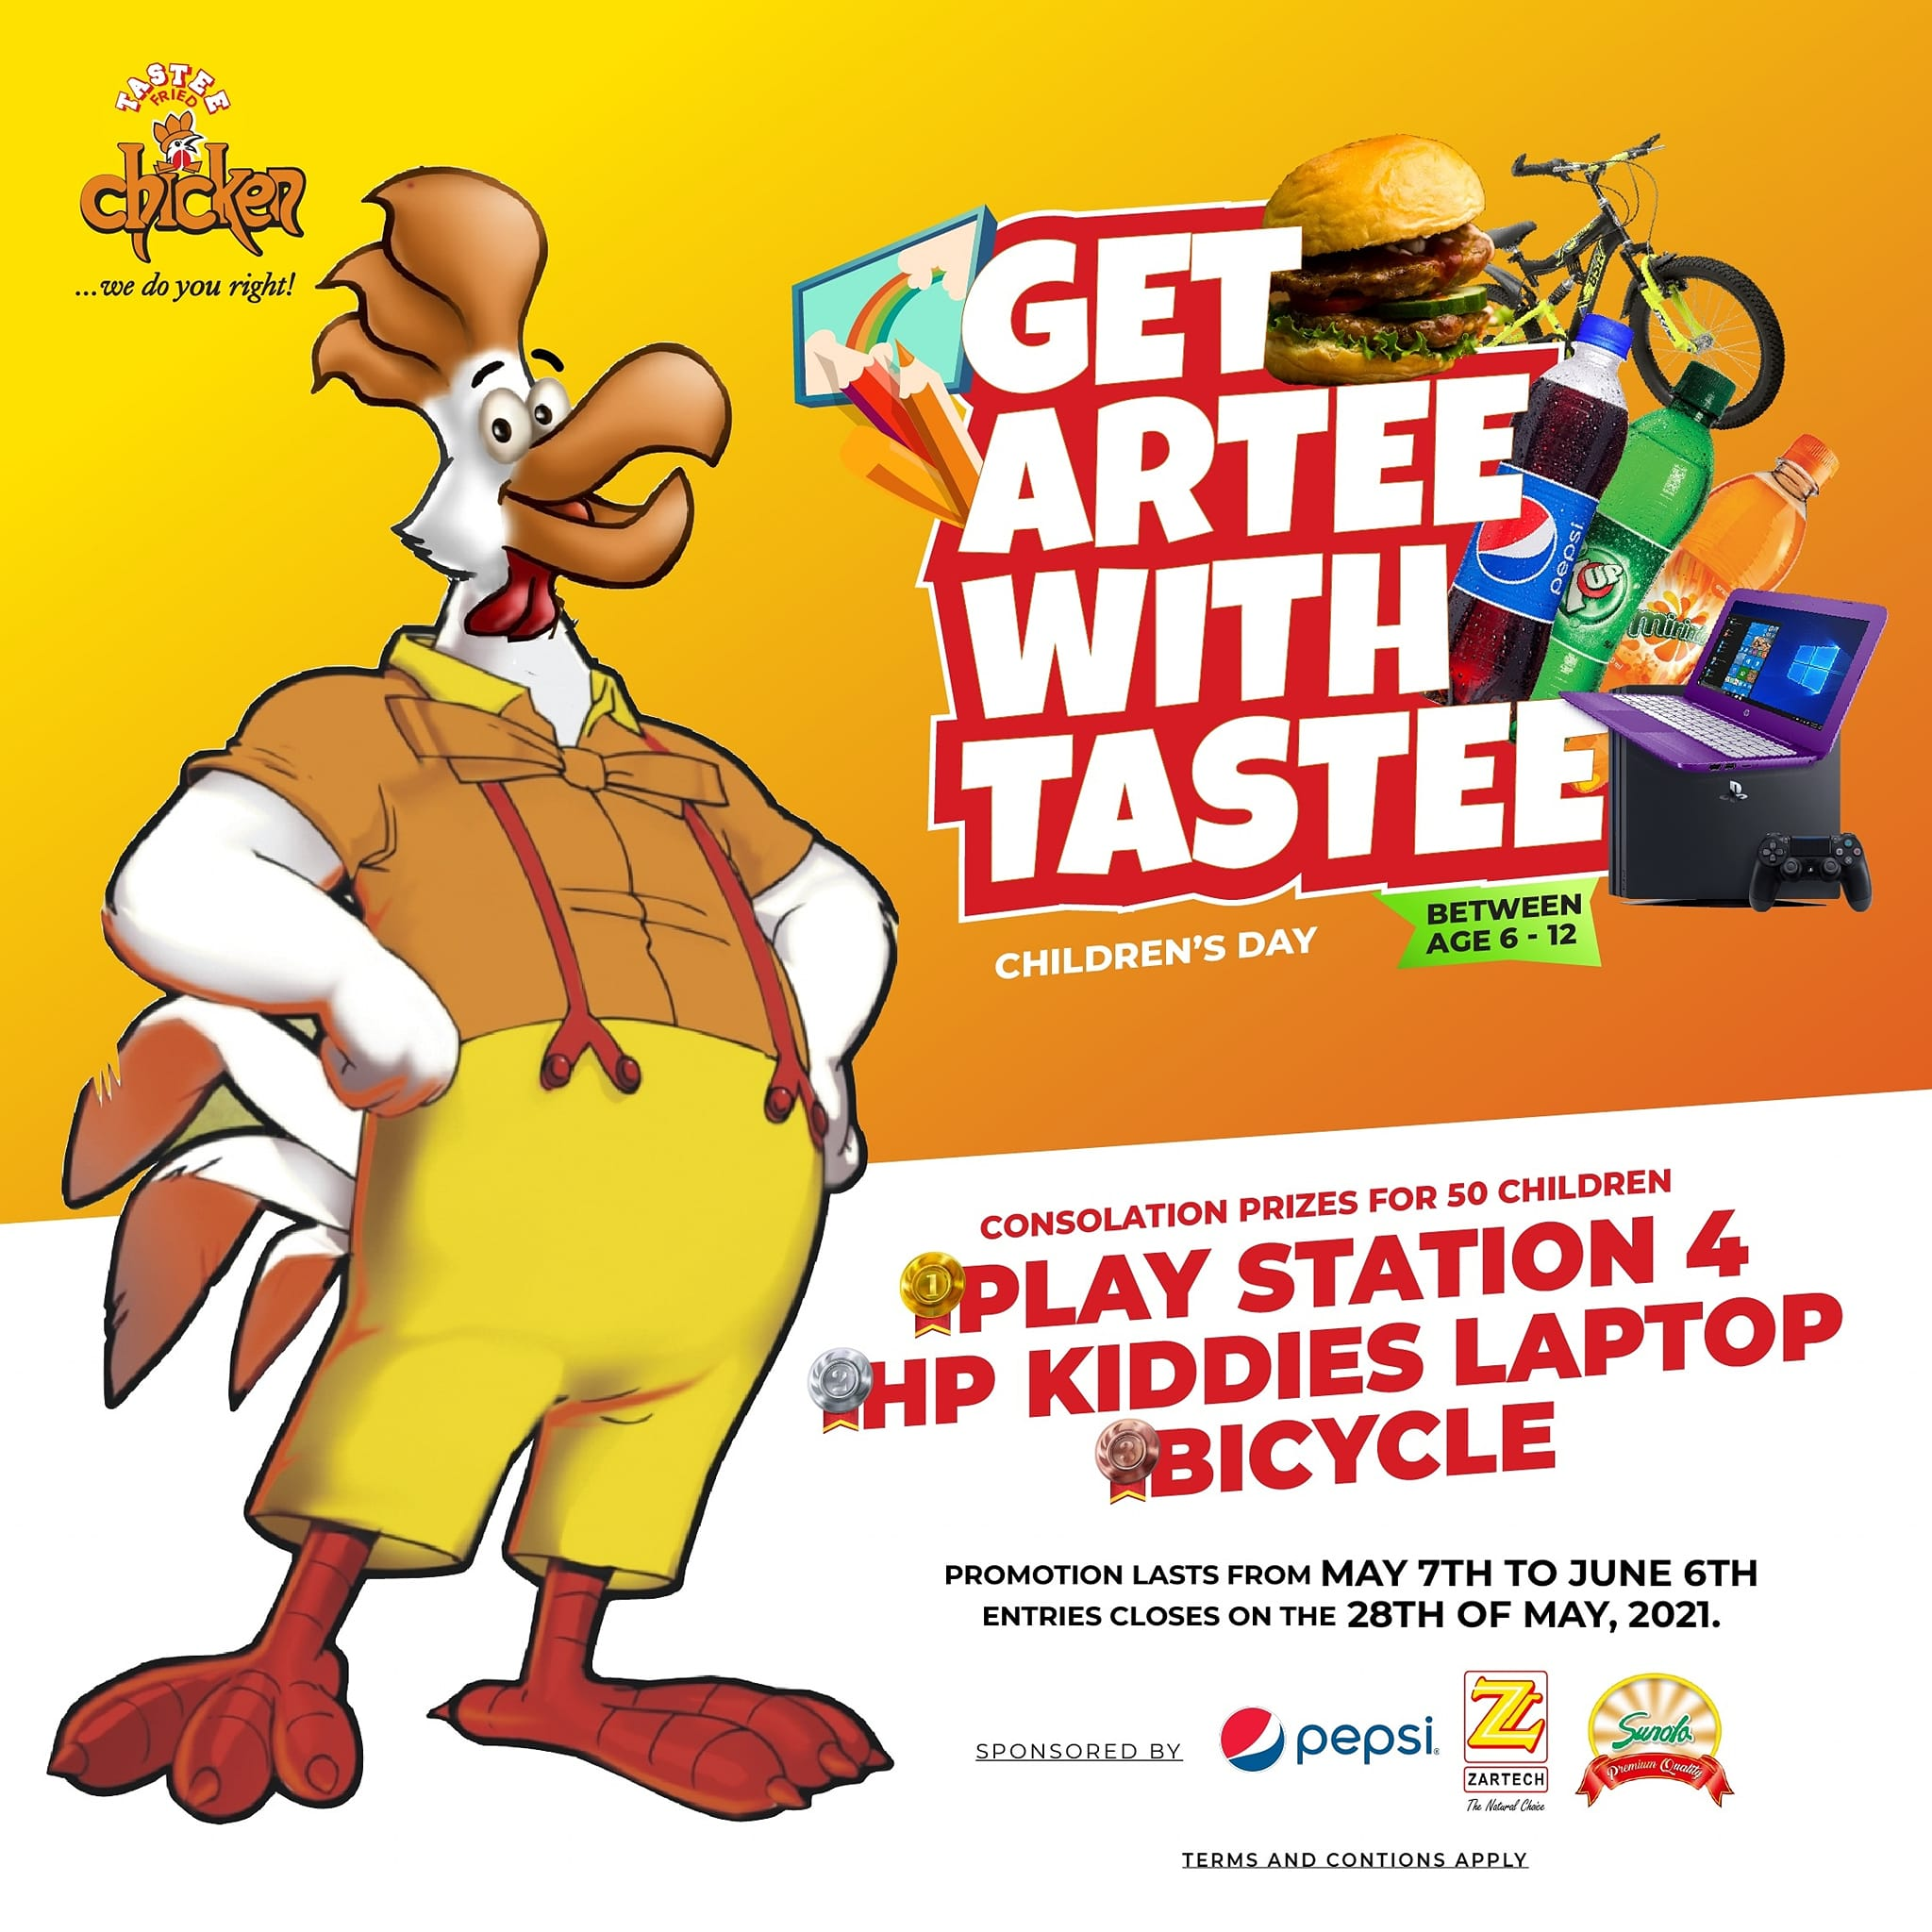 Win Play Station, Kids Tablets and Bicycle in Tastee Fried Chicken Children's Day Competition.